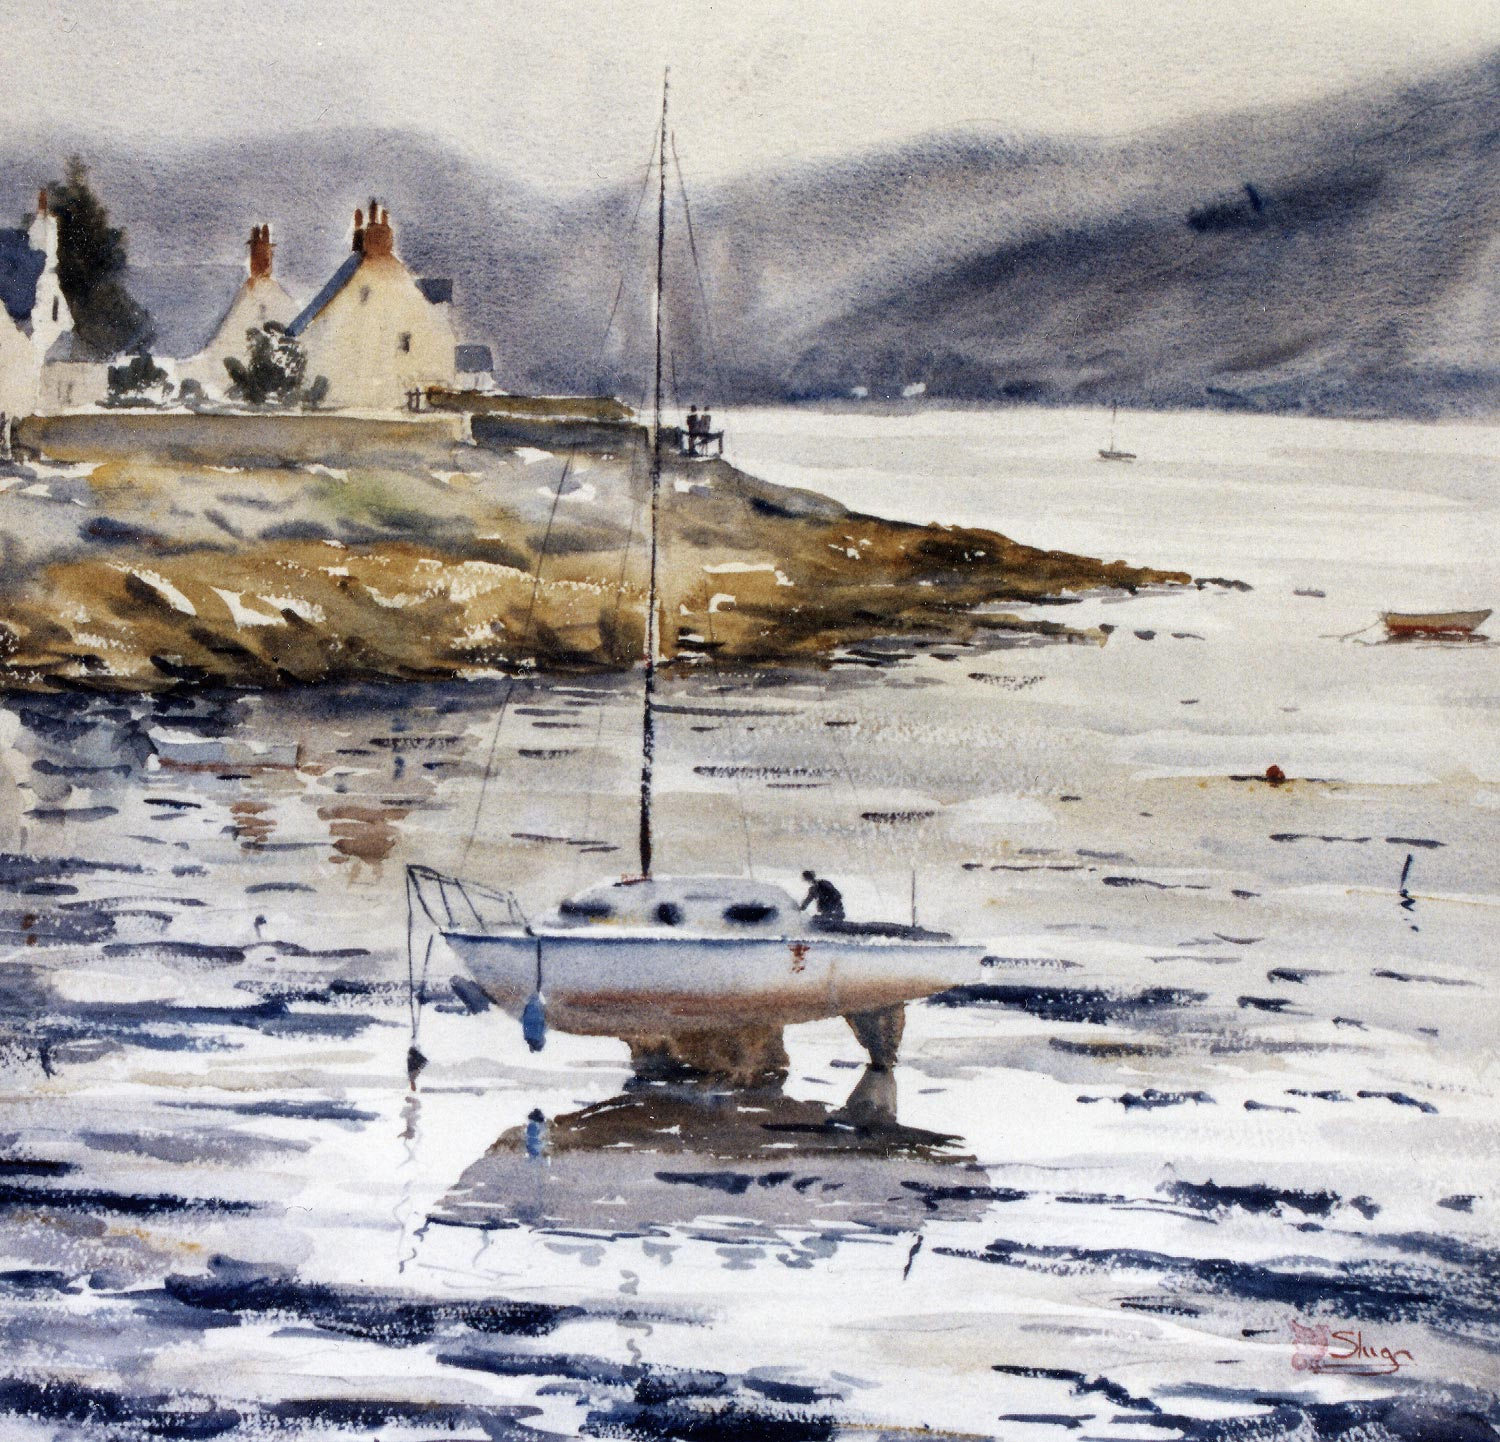 Plockton, Scotland  In this painting the low tide has left pools of water amongst the mud and sand. The lone boat sitting on its double keel is reflected in one of these puddles. It can be seen that the reflection is not an inverted copy of the boat, but instead we get a sense that the underside of the boat is reflected.